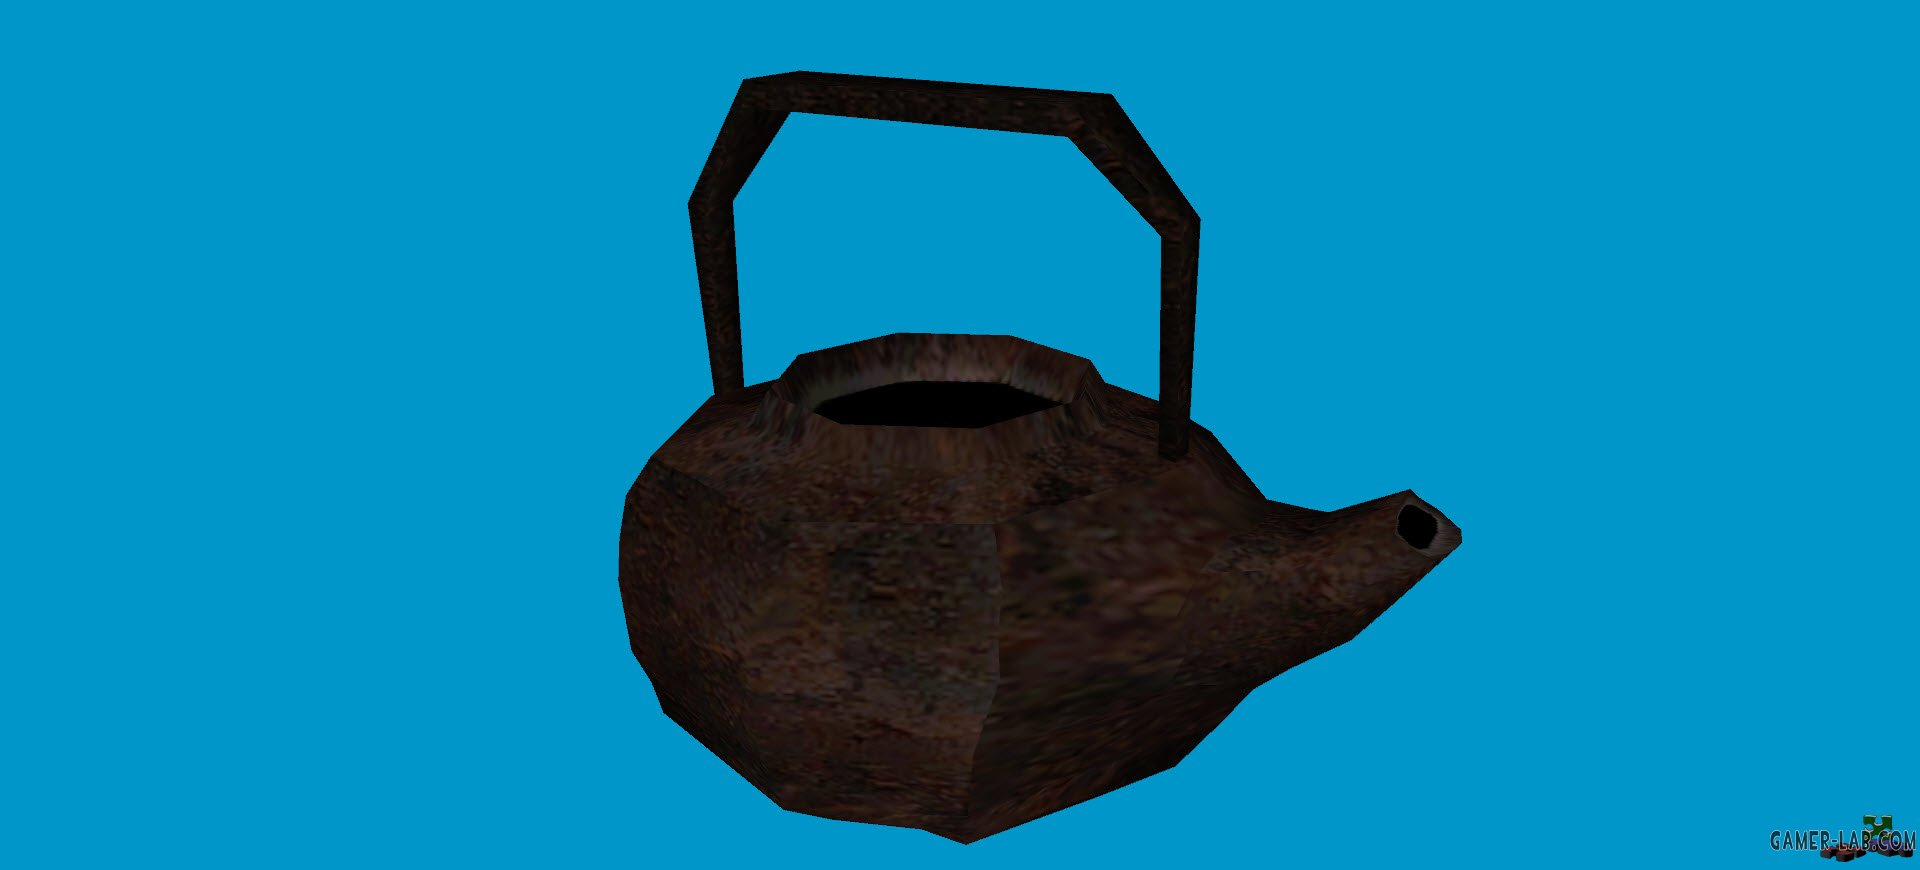 bt_teakettle